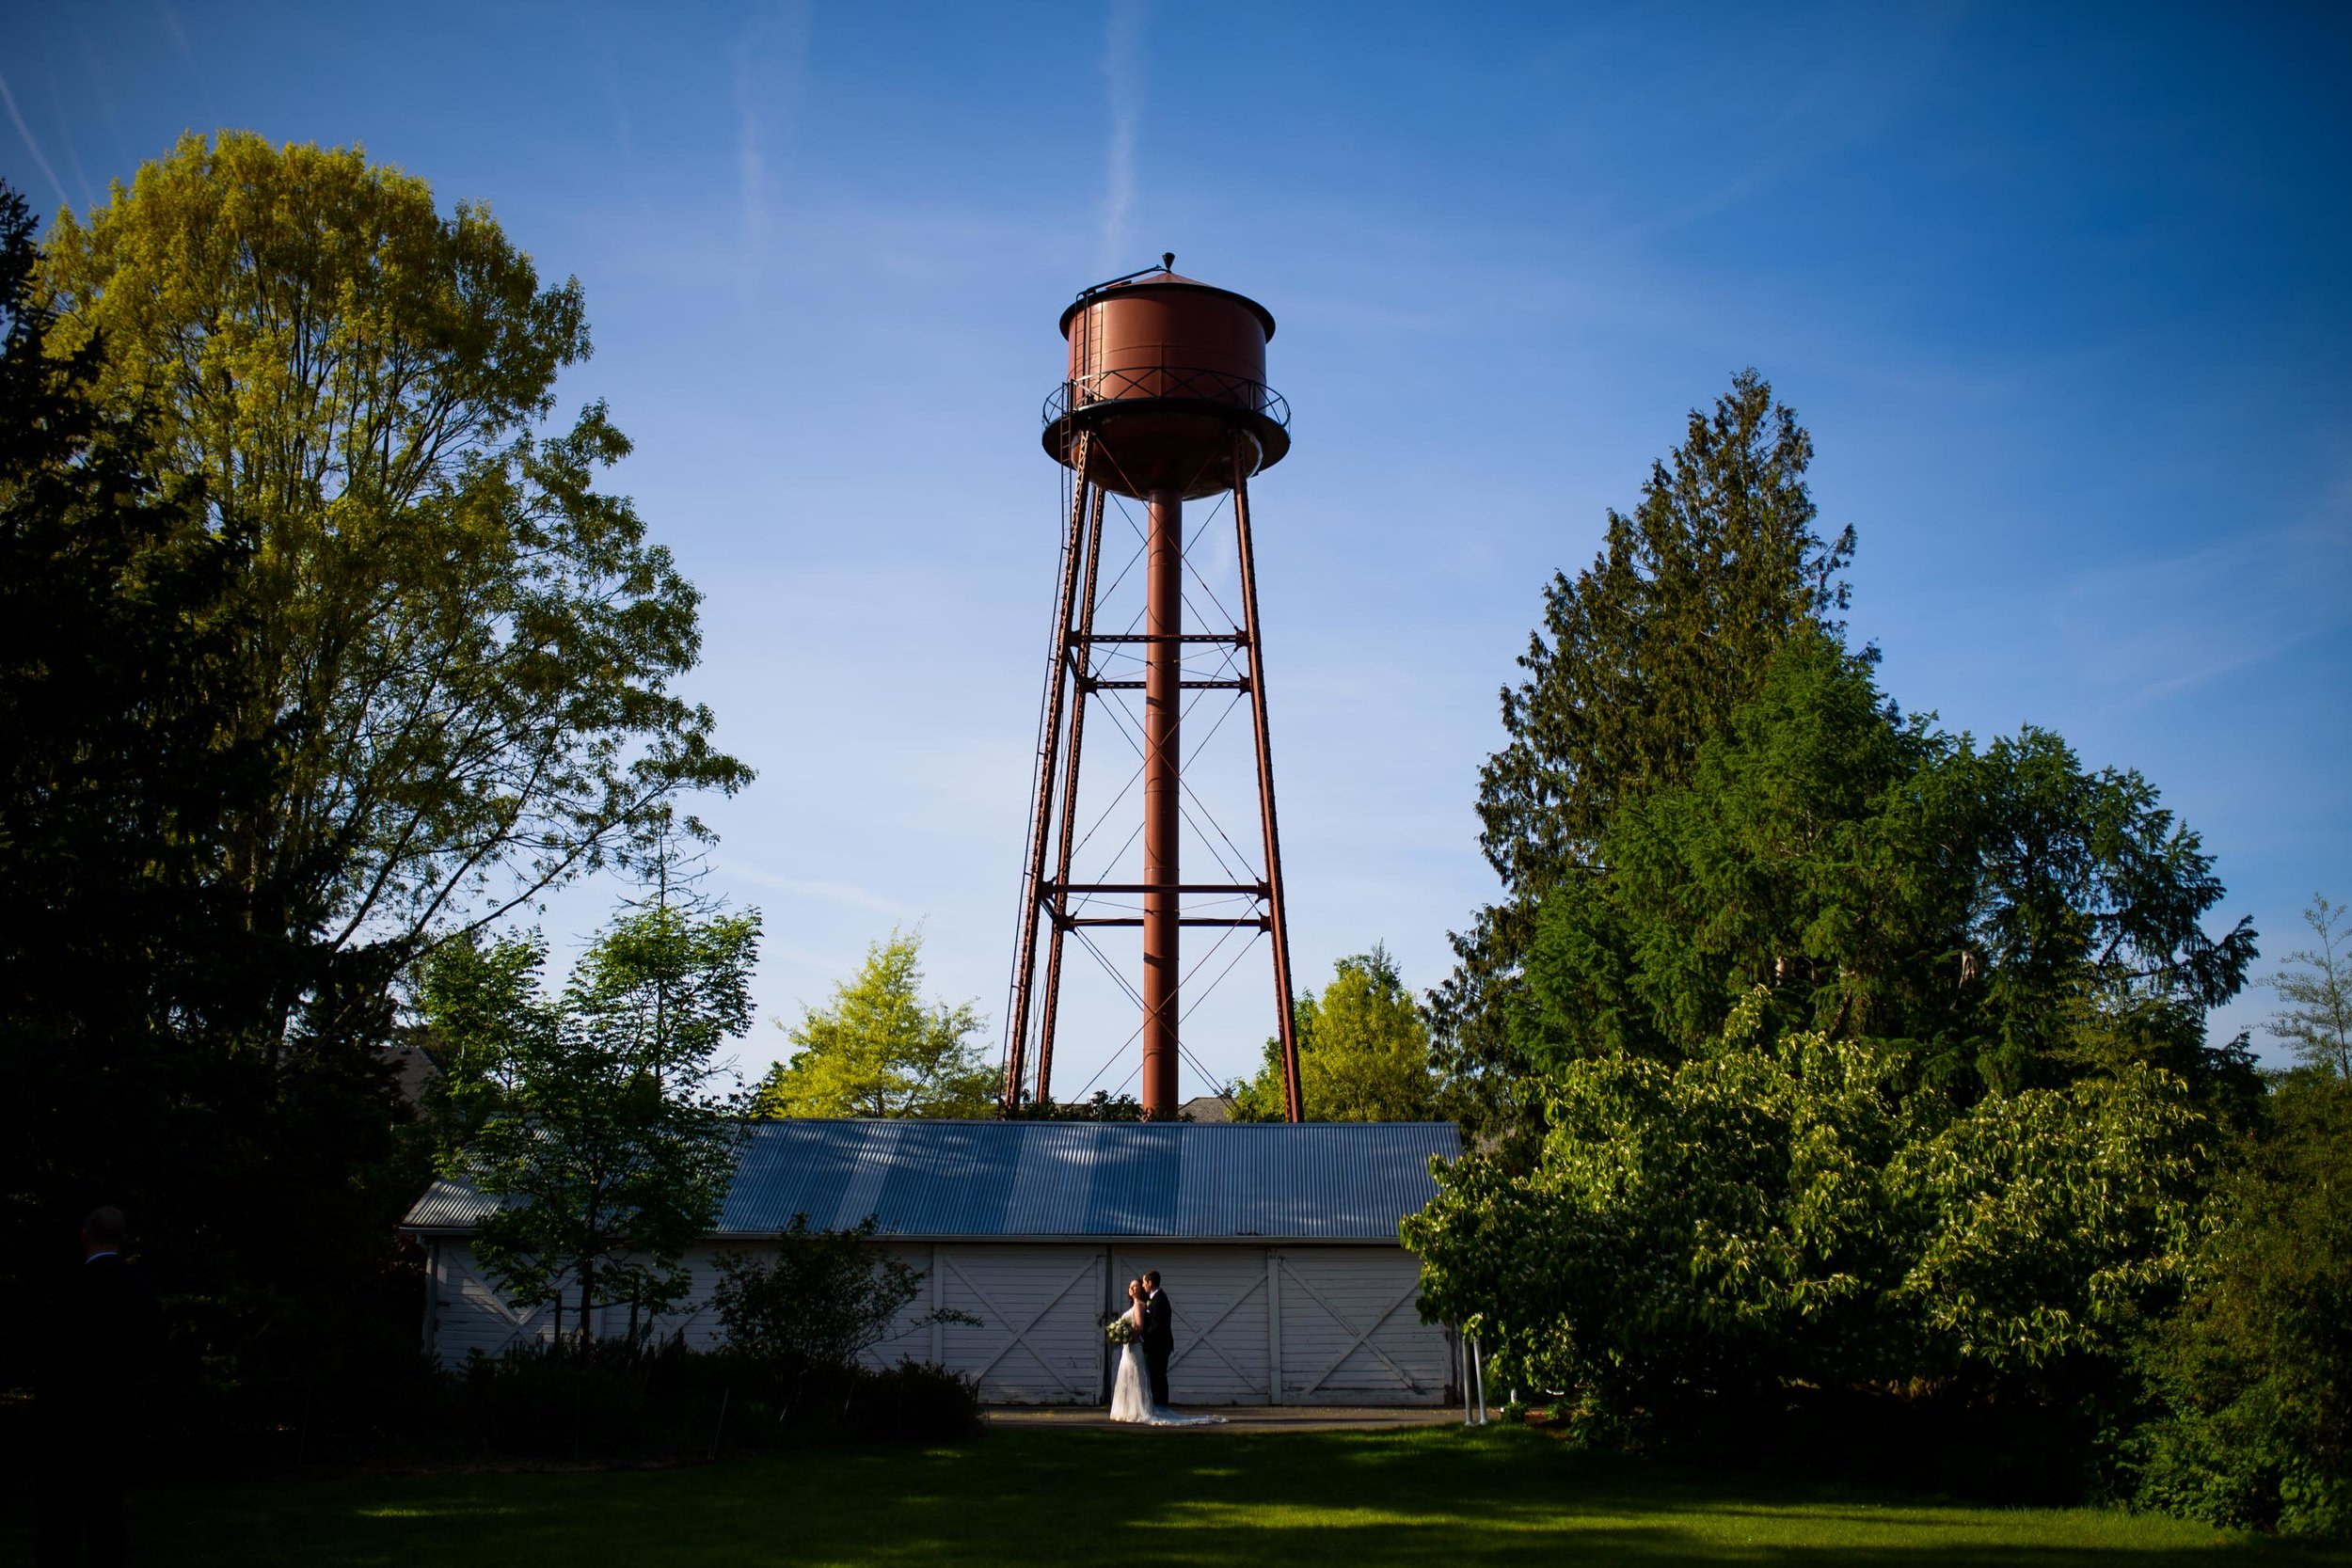 edgefield wedding photos67.jpg